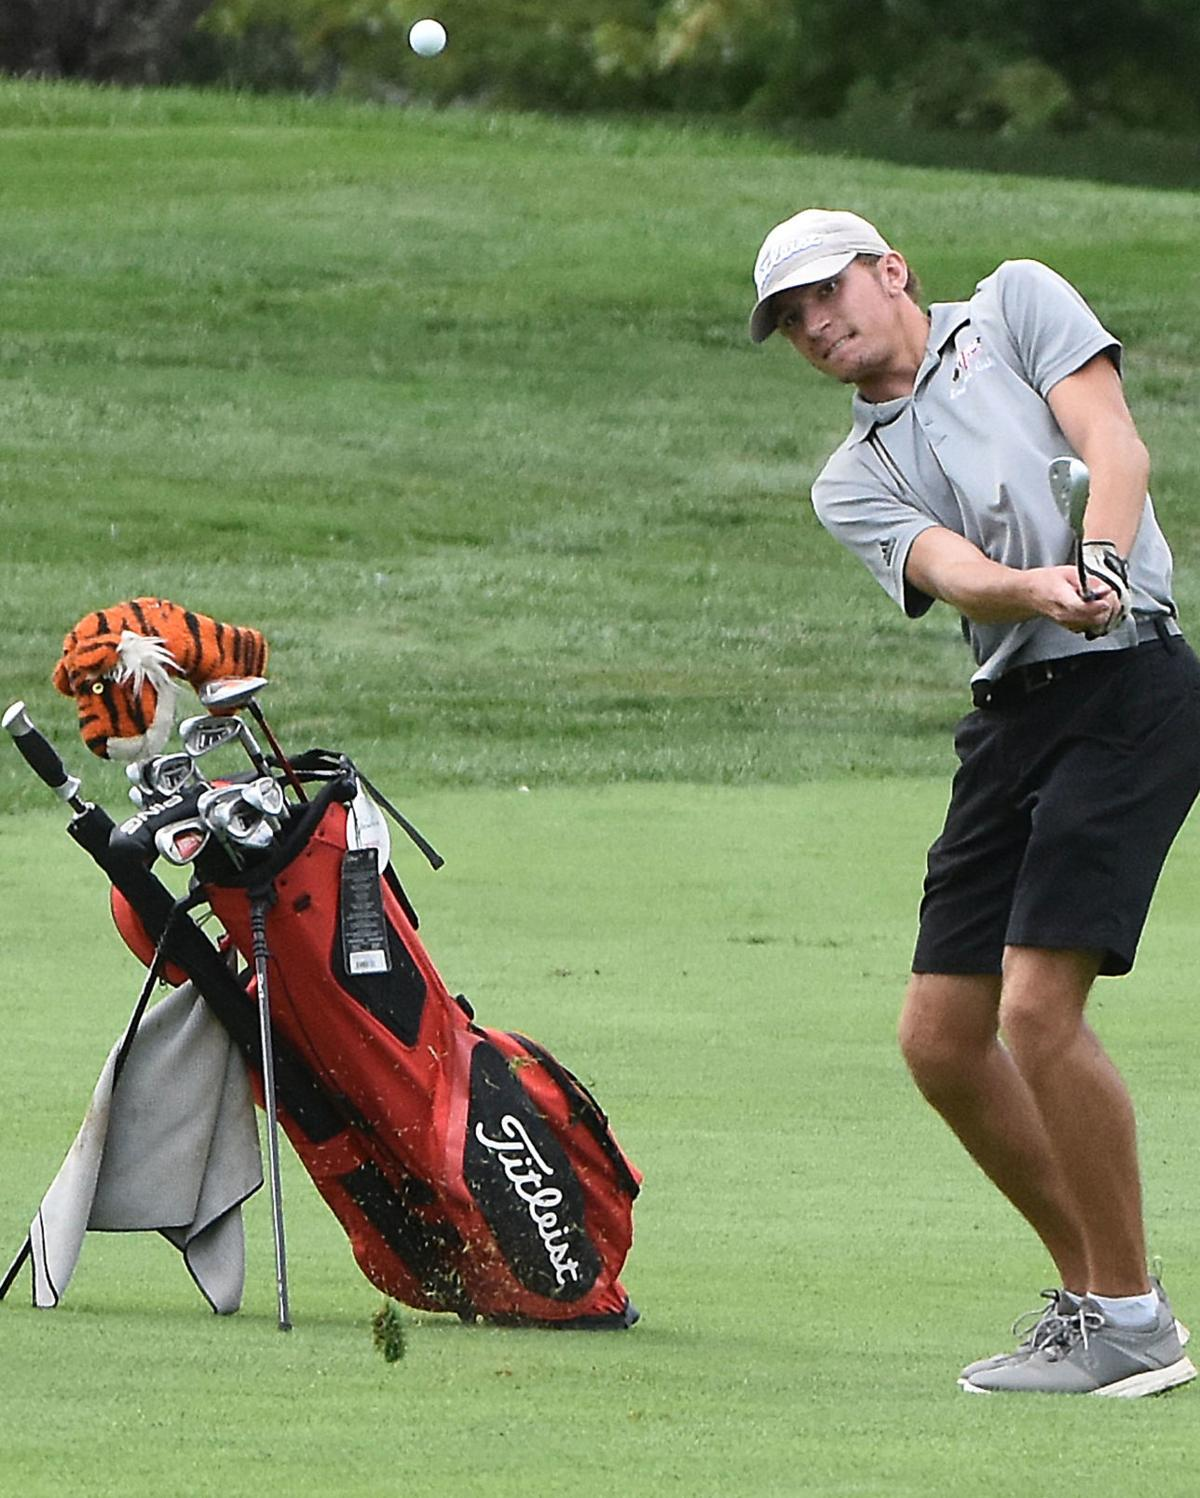 Franklin County's Harvey earns state tournament berth